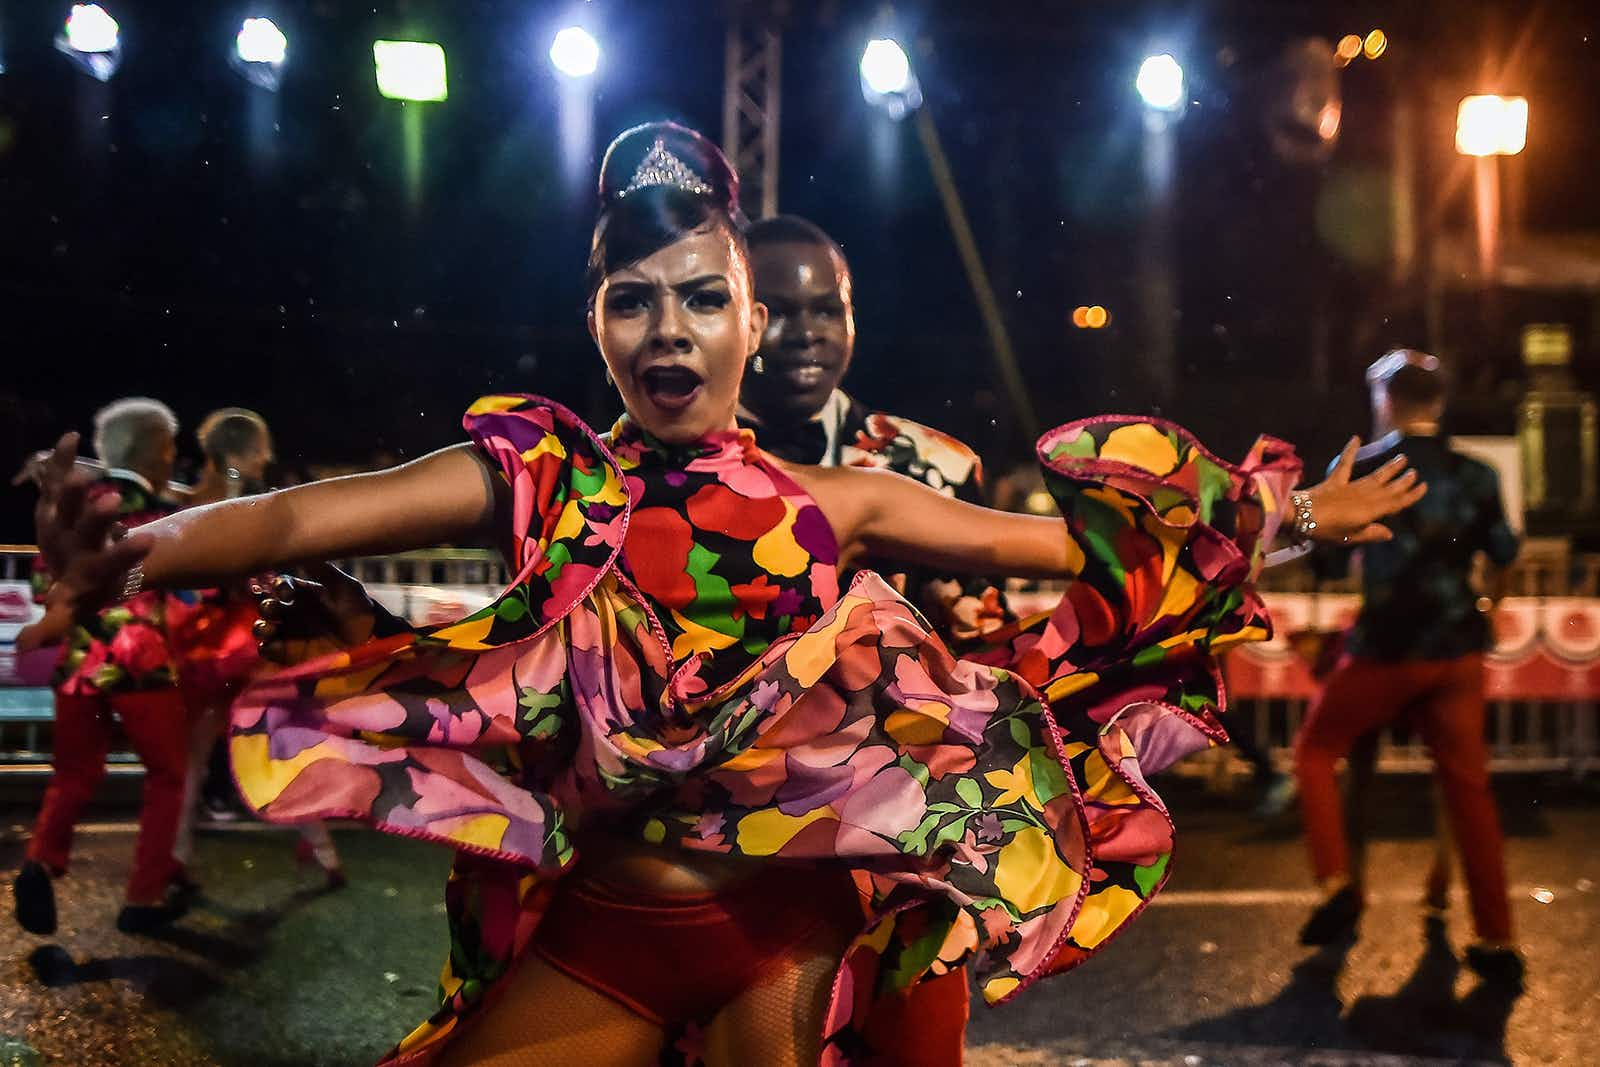 "Colombian salsa dancers perform during the ""Salsodromo"" parade during the opening of the 60th Cali Fair in Cali on December 25, 2017. More than 1,500 dancers from different salsa schools in the city danced on the streets wearing colorful costumes, representing all aspects of salsa music culture in the largest parade of salsa dancers in the world. / AFP PHOTO / Luis ROBAYO        (Photo credit should read LUIS ROBAYO/AFP/Getty Images)"